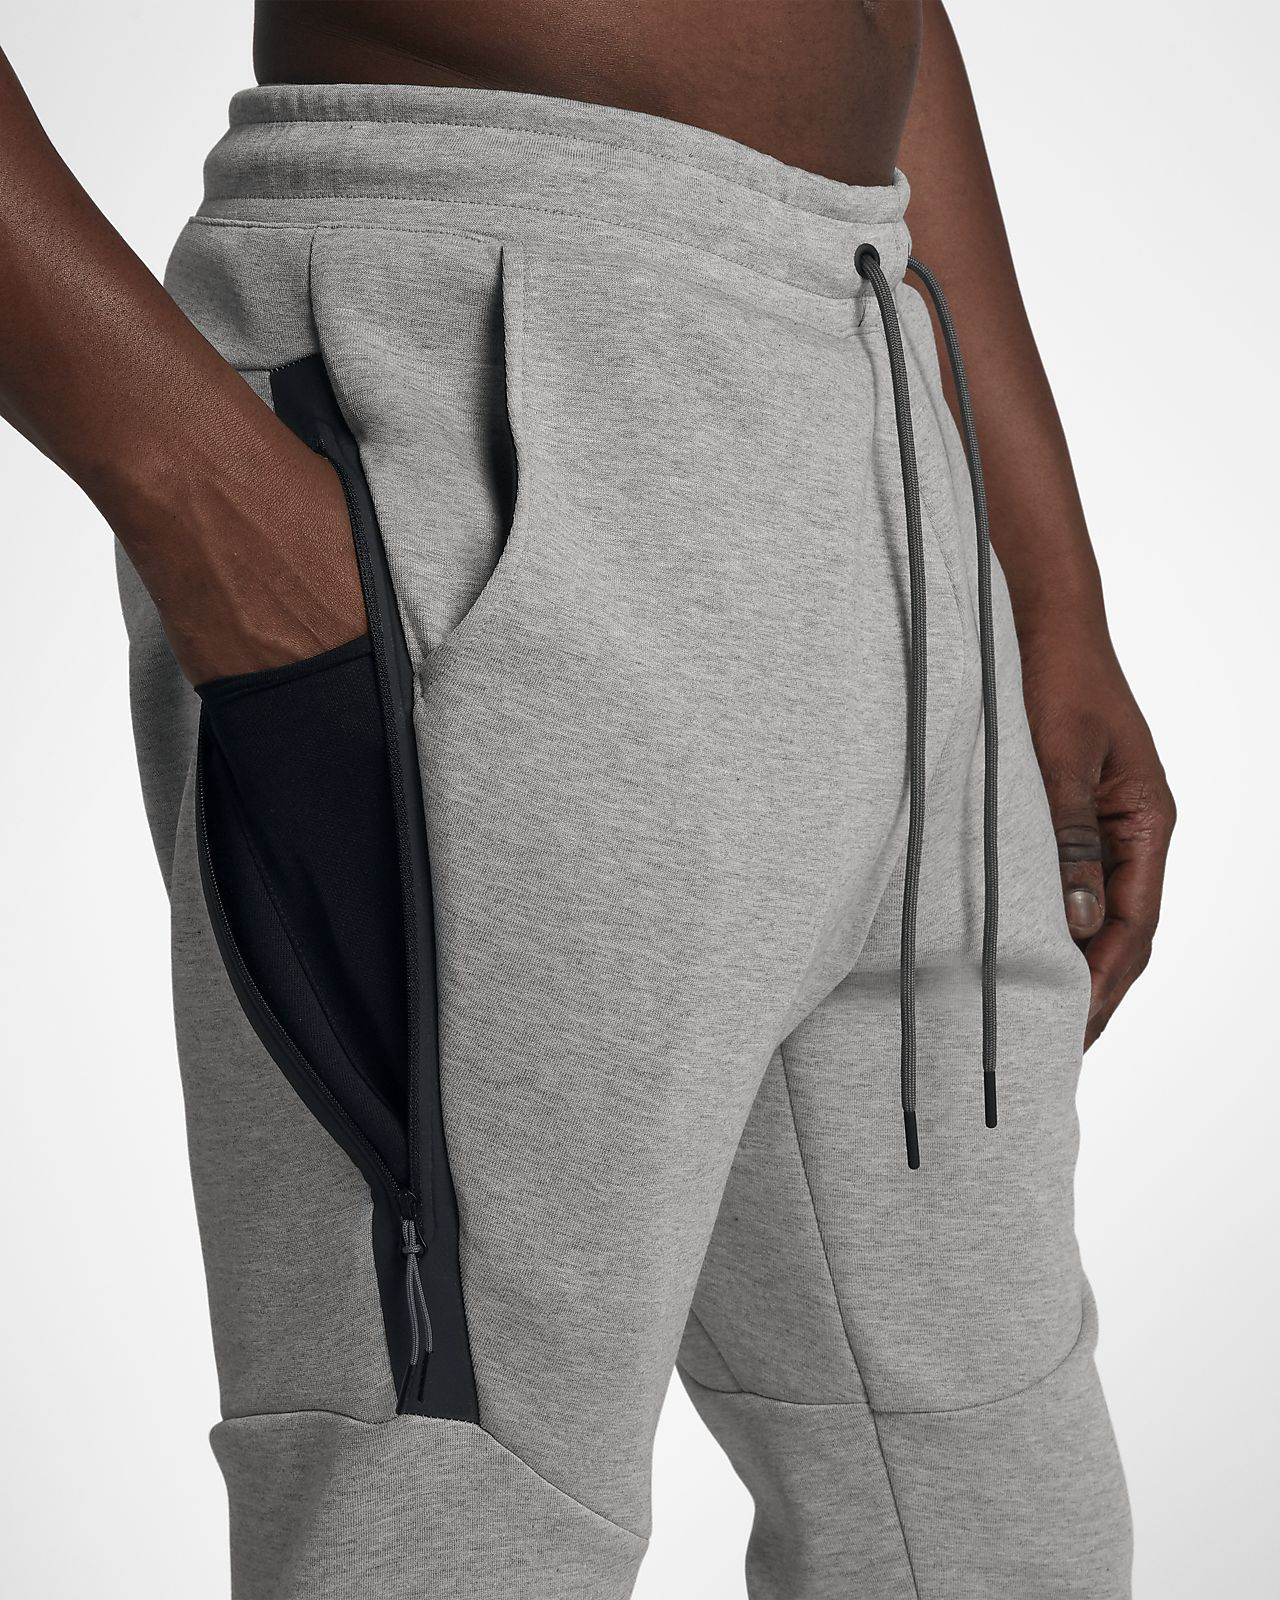 9a099fd30230d Nike Sportswear Tech Fleece Men's Joggers. Nike.com